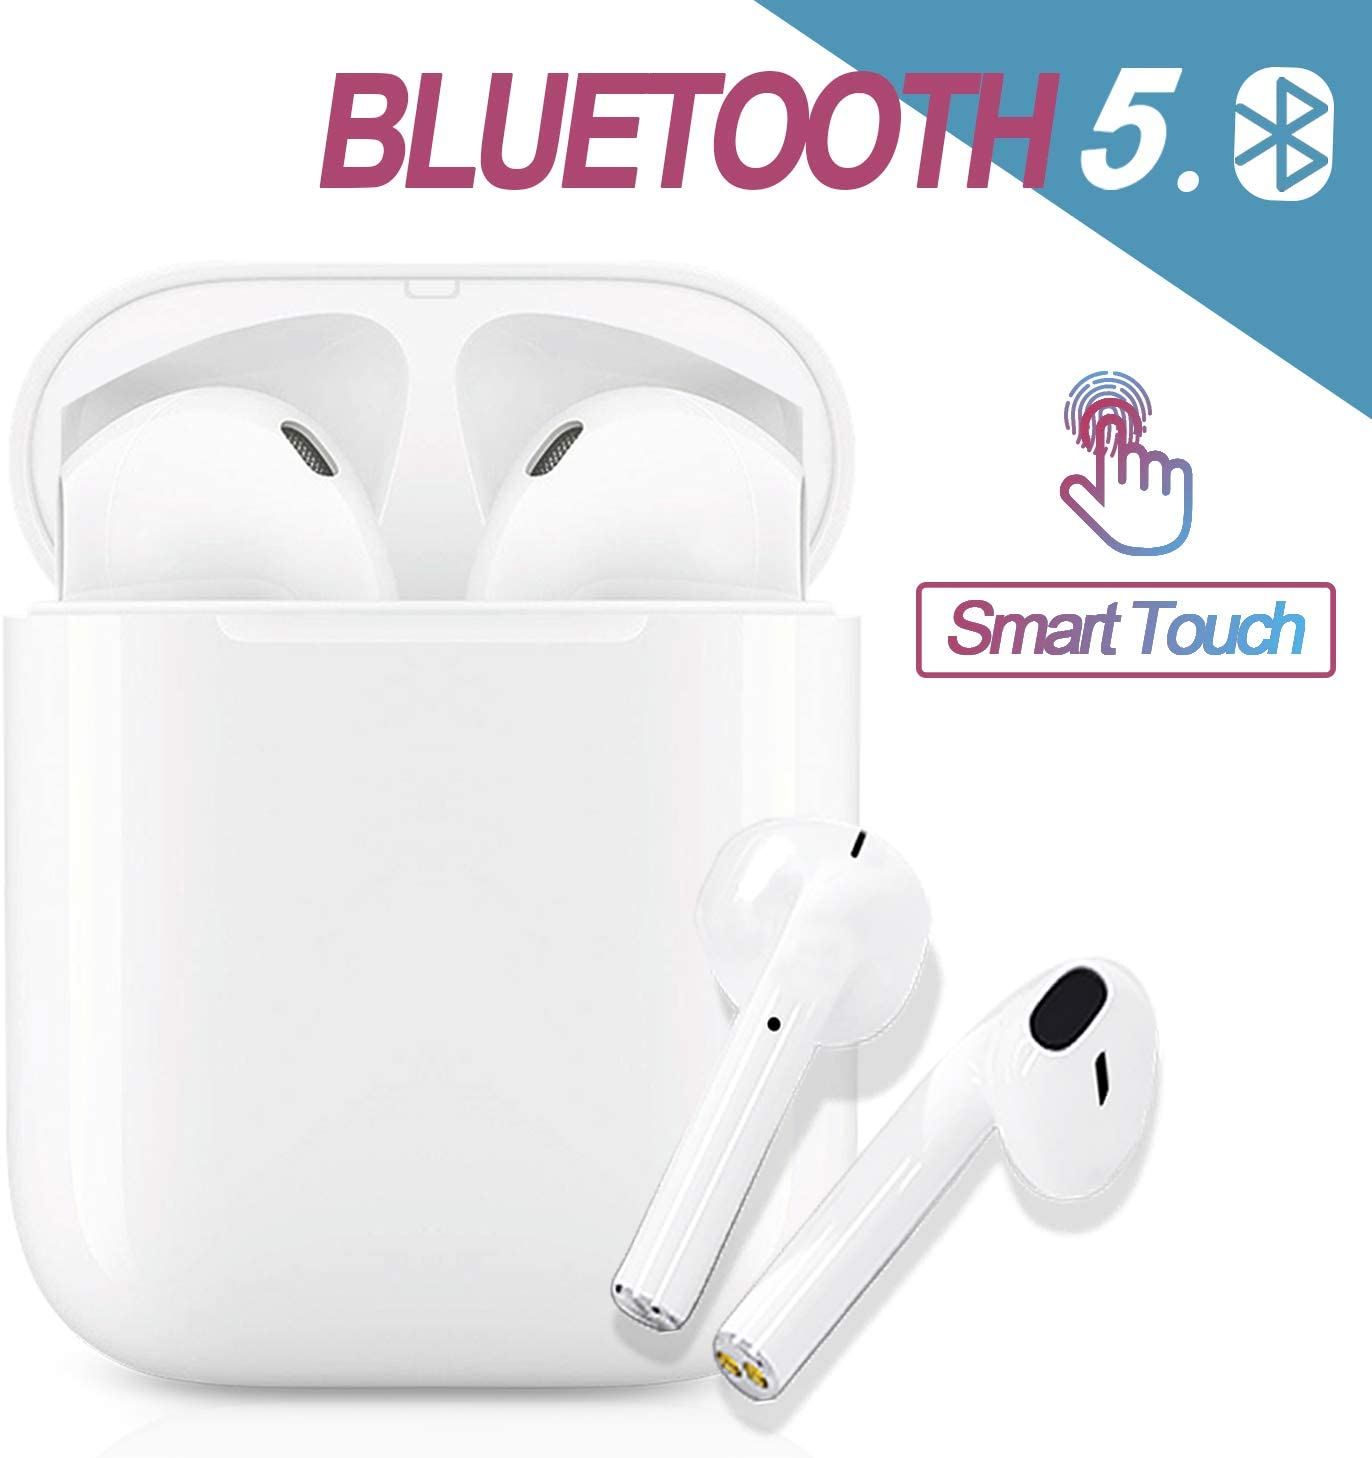 Bluetooth 5.0 Headset Wireless Earbuds 3D Stereo Headphone with Fast Charging Case,Auto Pairing in-Ear Ear Buds IPX5 Waterproof Mini Sports Earphones for iPhone Apple Airpods Wireless Earbuds